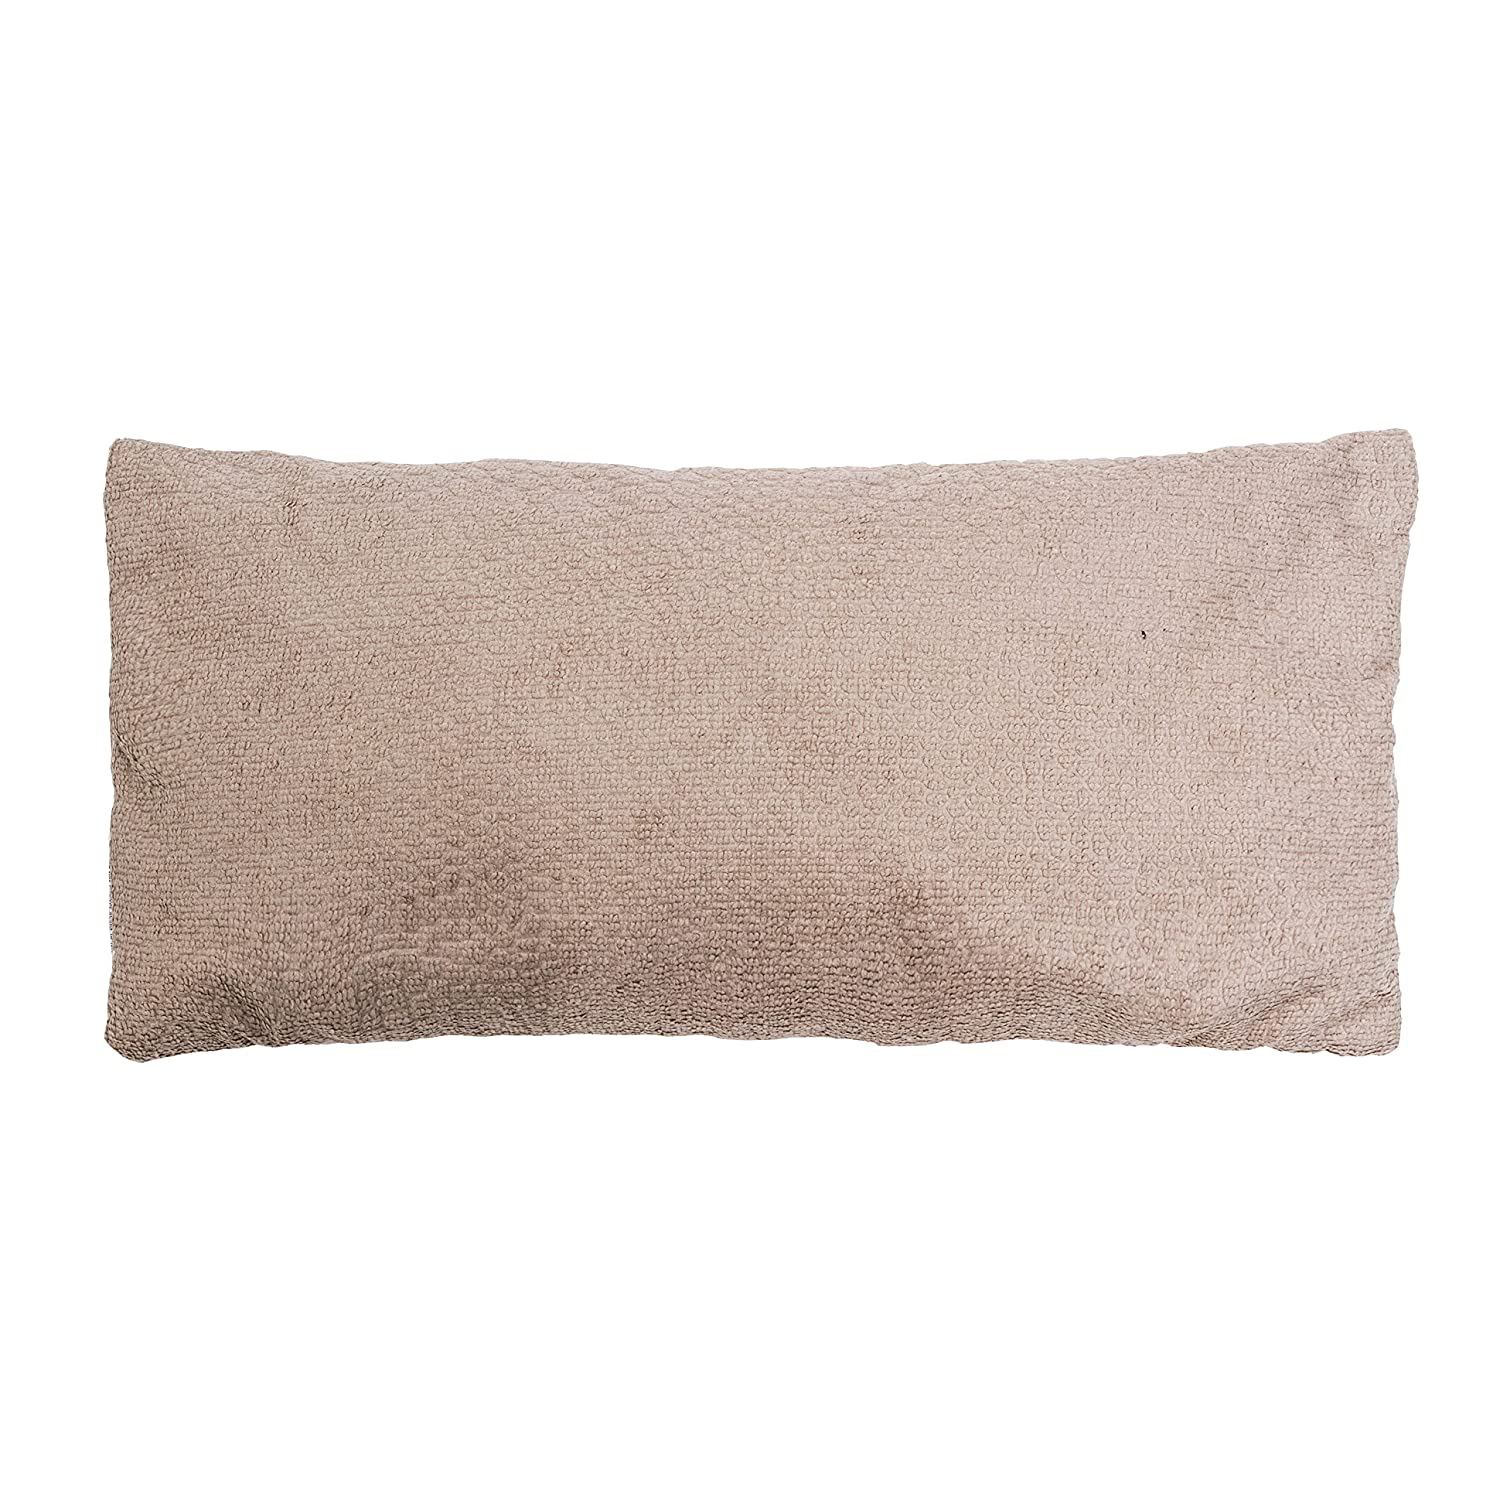 Splash Home Beads Pebble Non Slip Bath Pillow Luxurious Cushion Spa for Bathtub, Hot Tub, Jacuzzi, 13 x 3.5 x 5.5, Chocolate 14BEADP/STCHOSPL